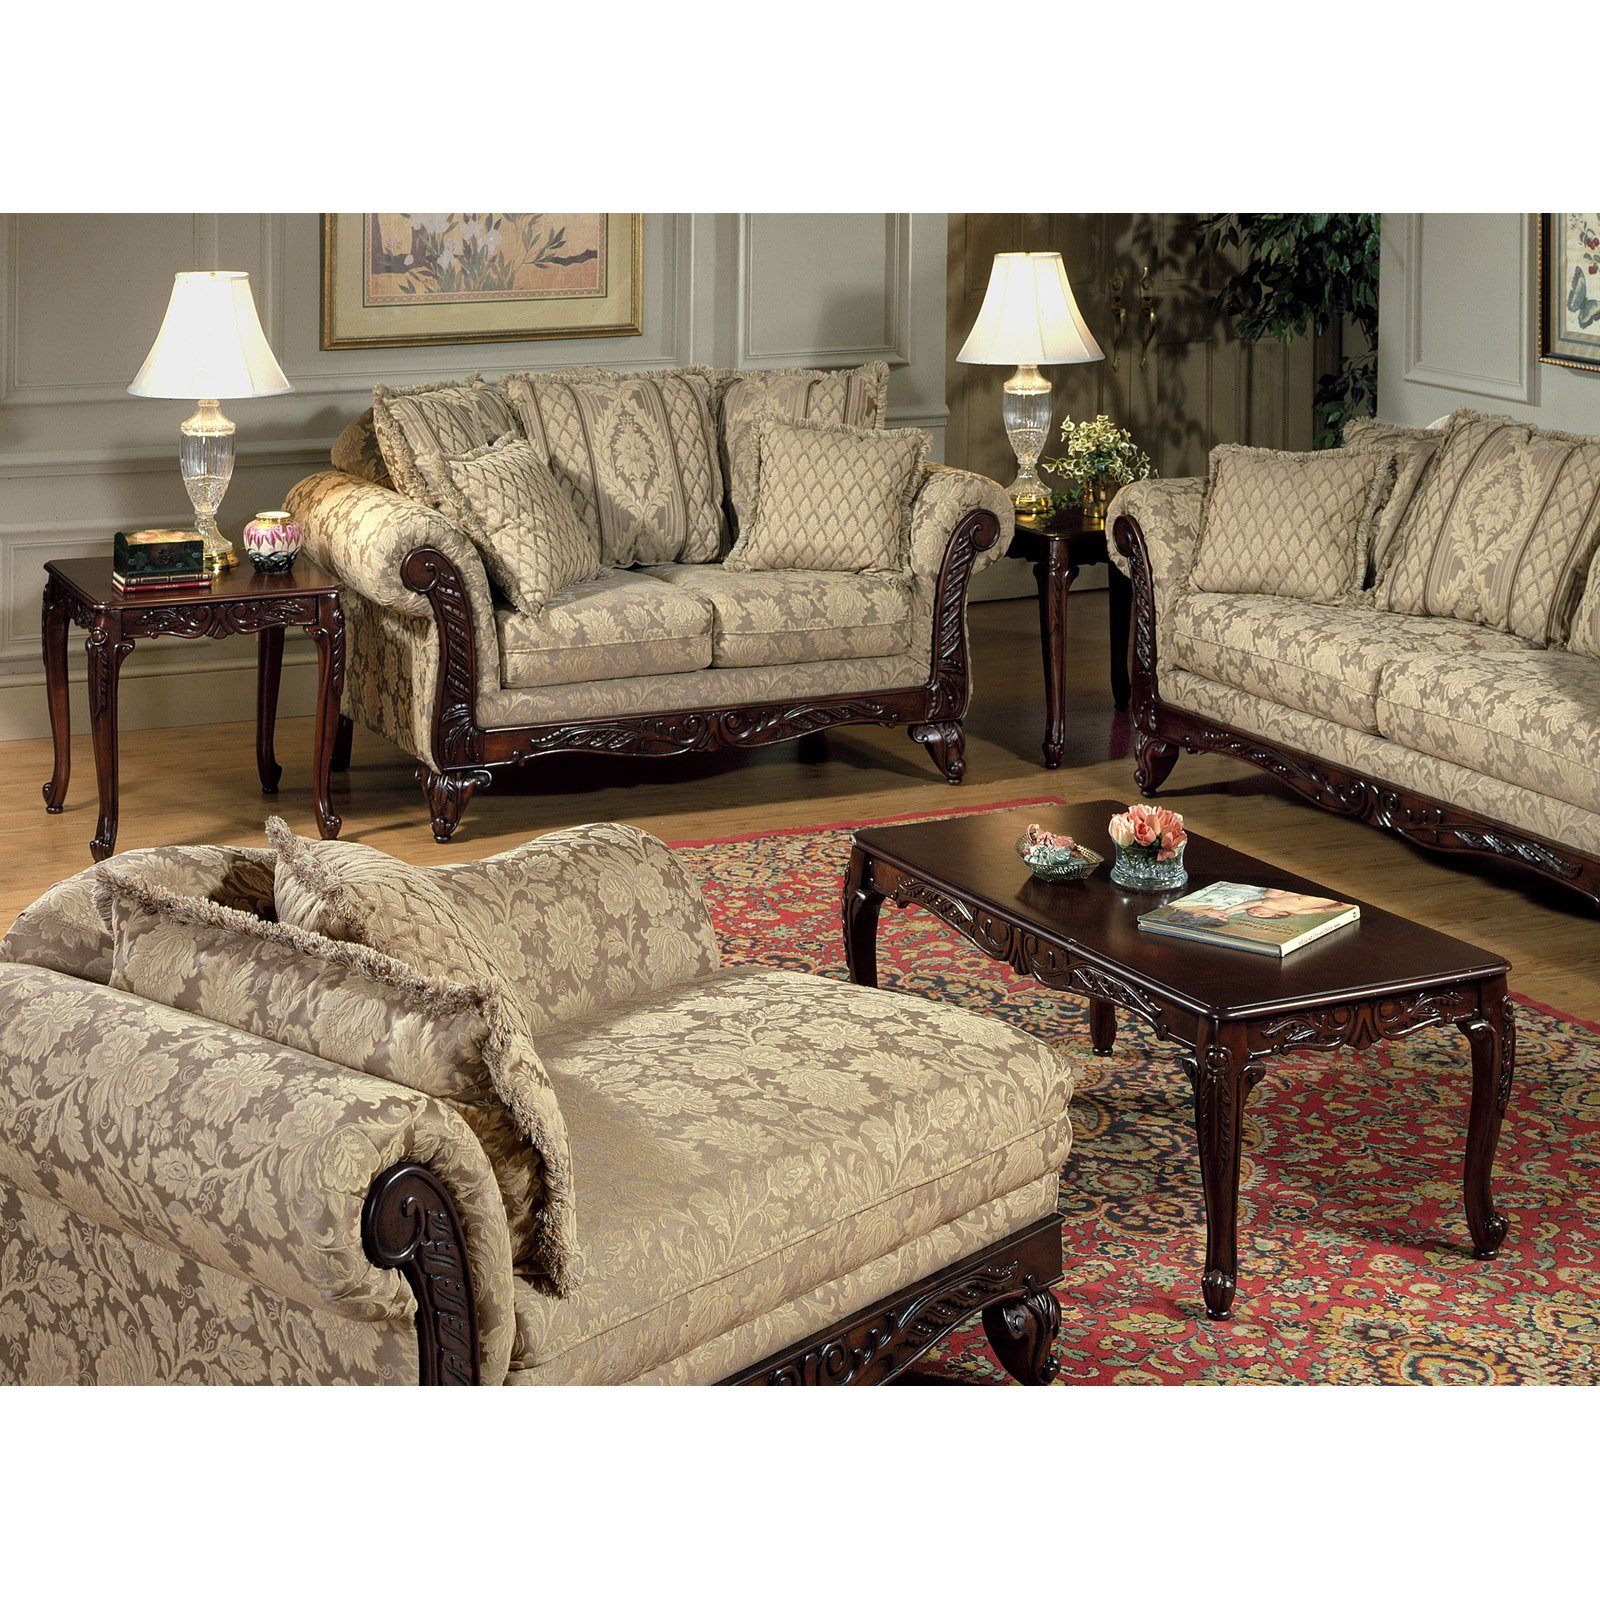 Chelsea home king henry rectangle coffee table set walmart geotapseo Gallery